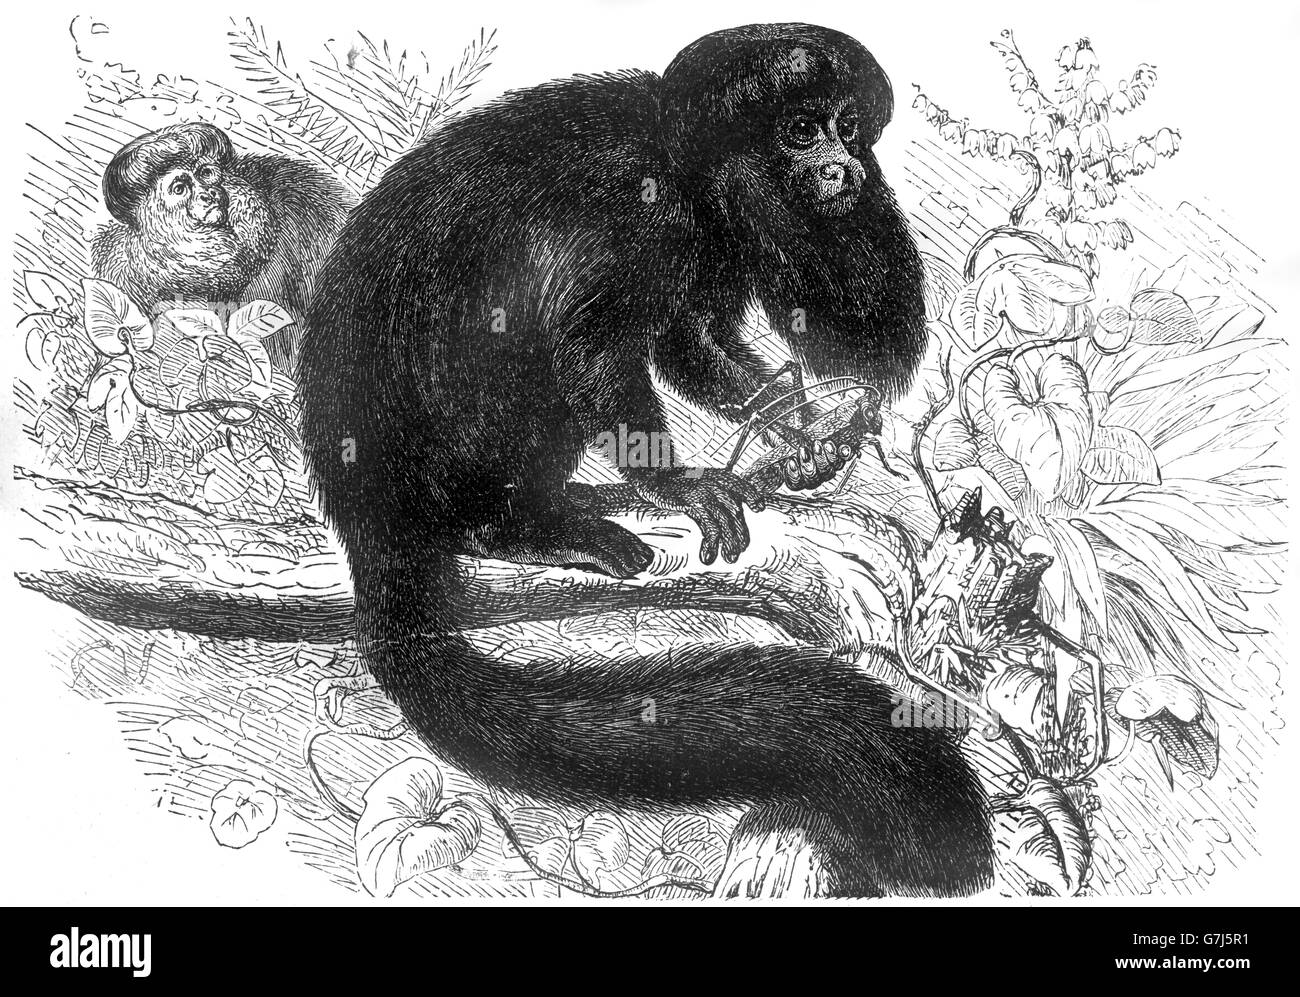 Black bearded saki, Chiropotes satanas, New World monkey, Pitheciidae, illustration from book dated 1904 - Stock Image